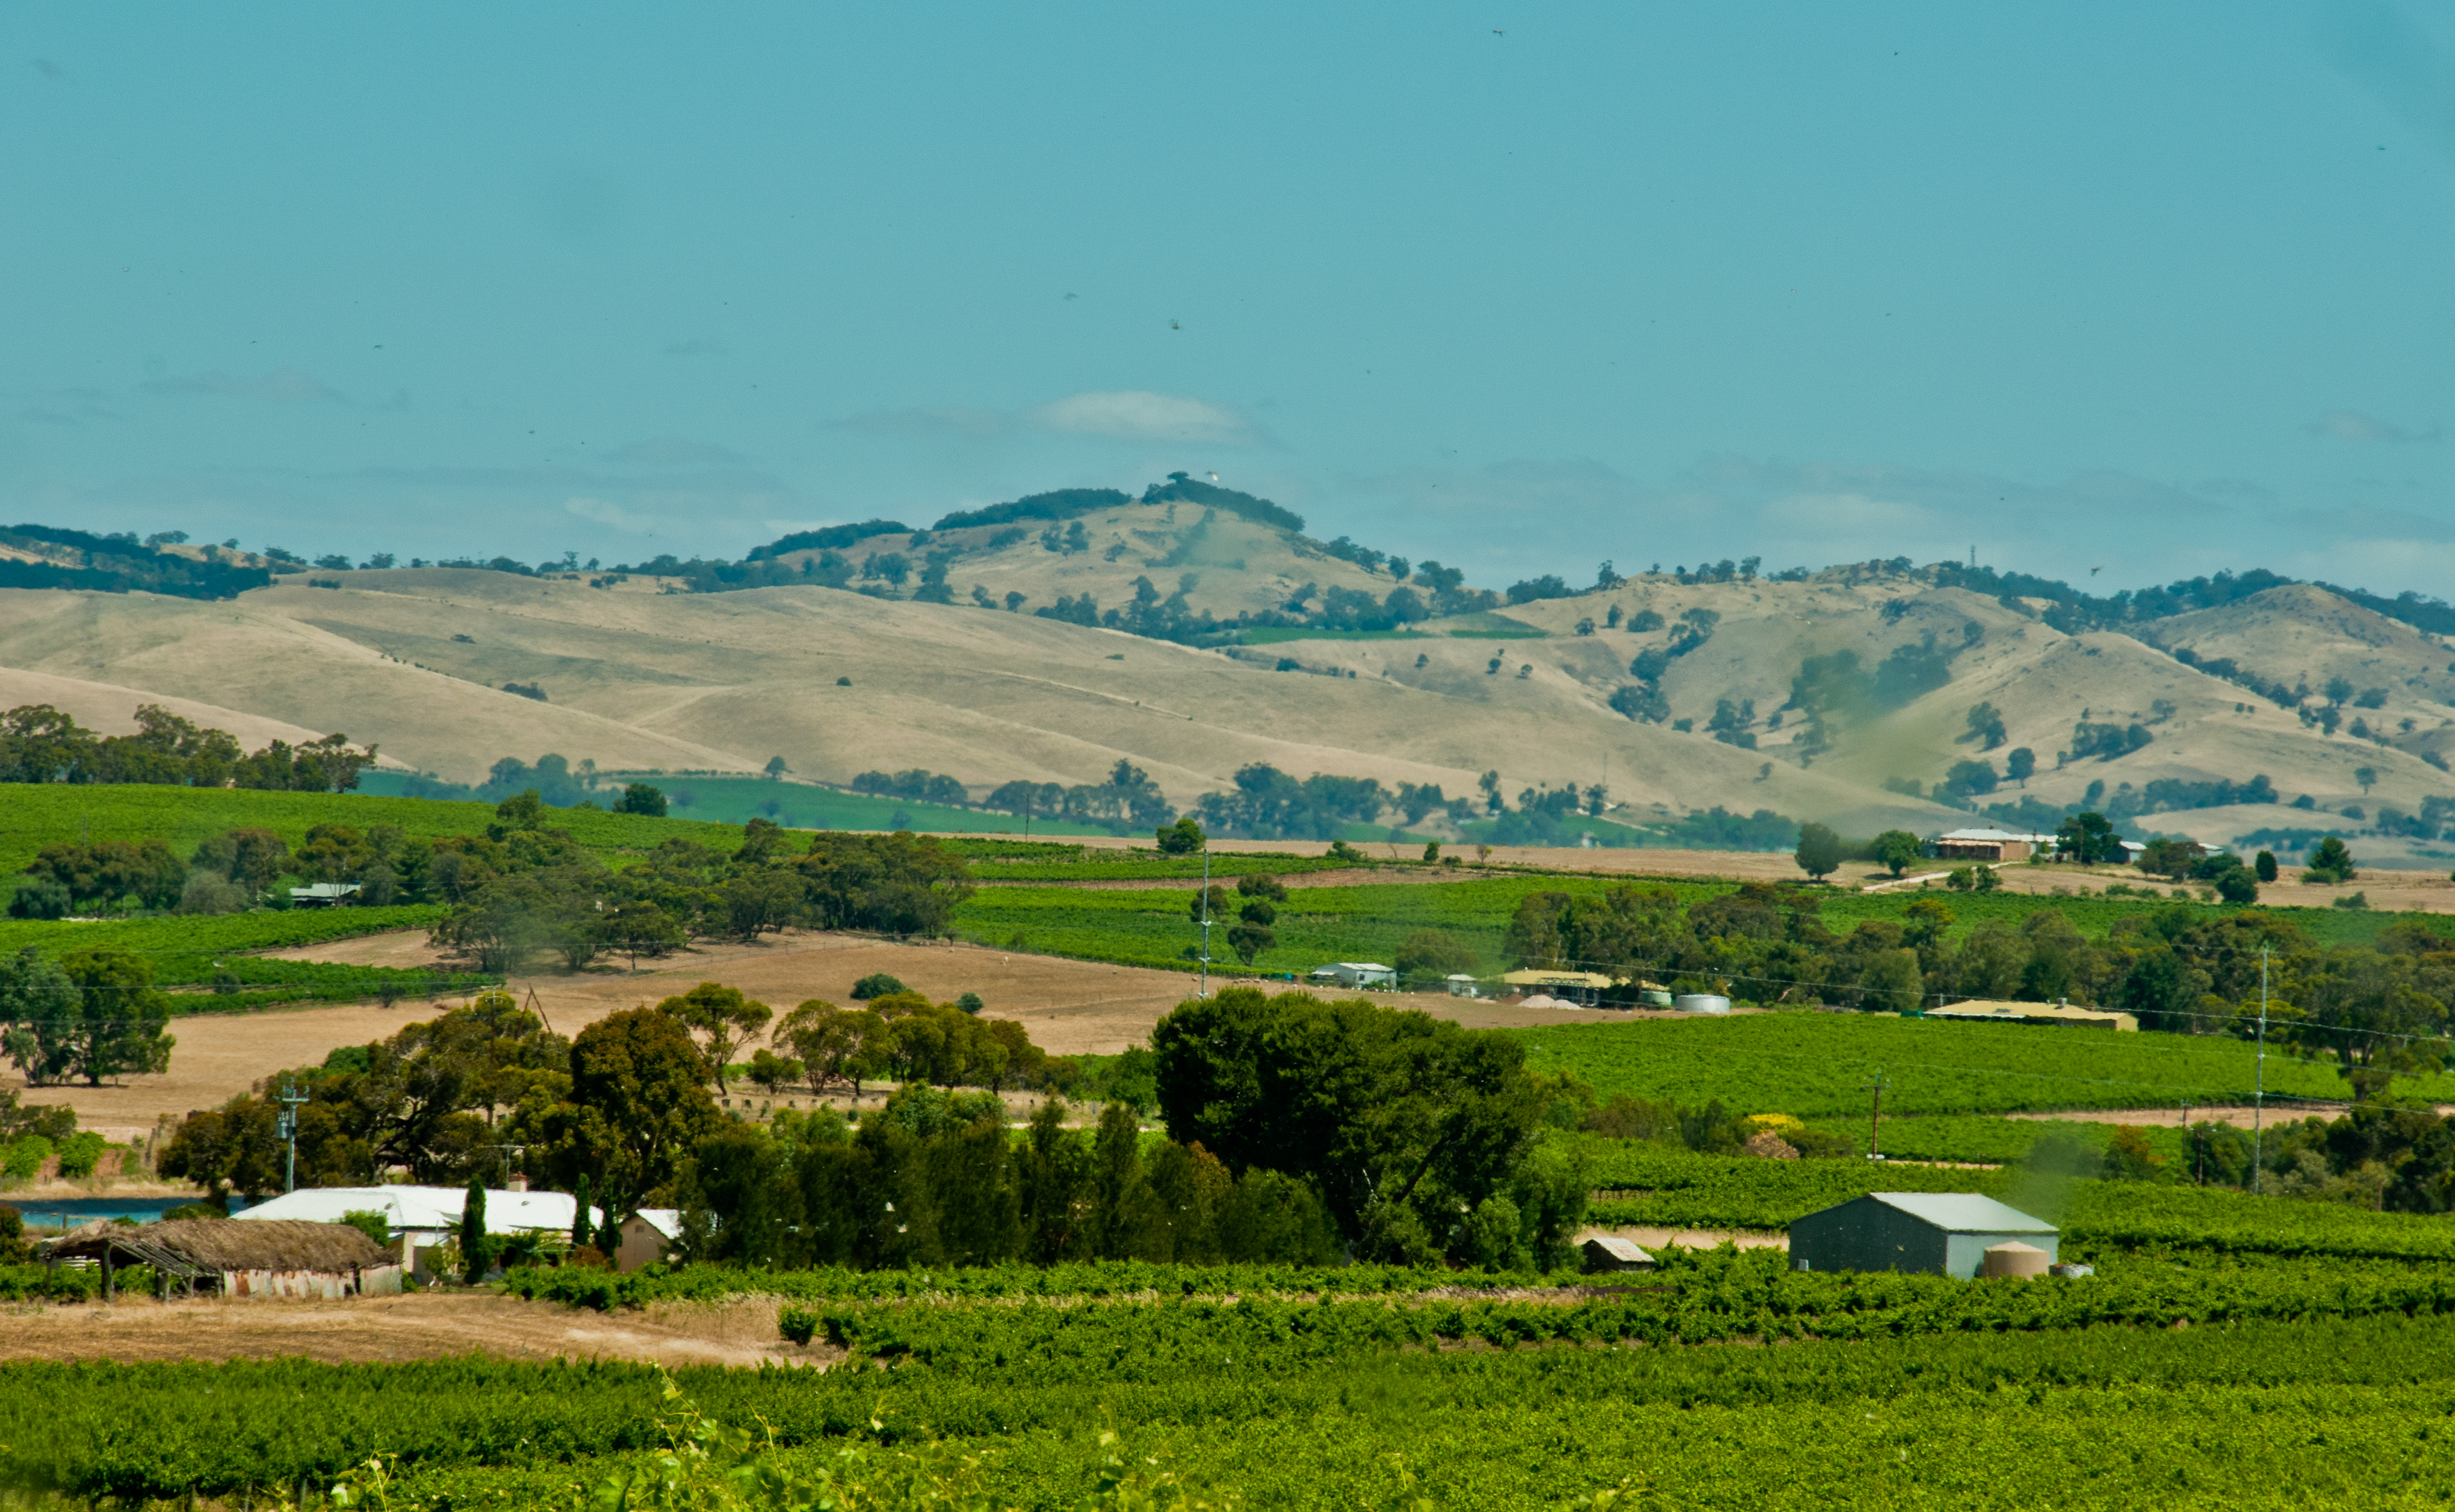 In the Barossa Valley